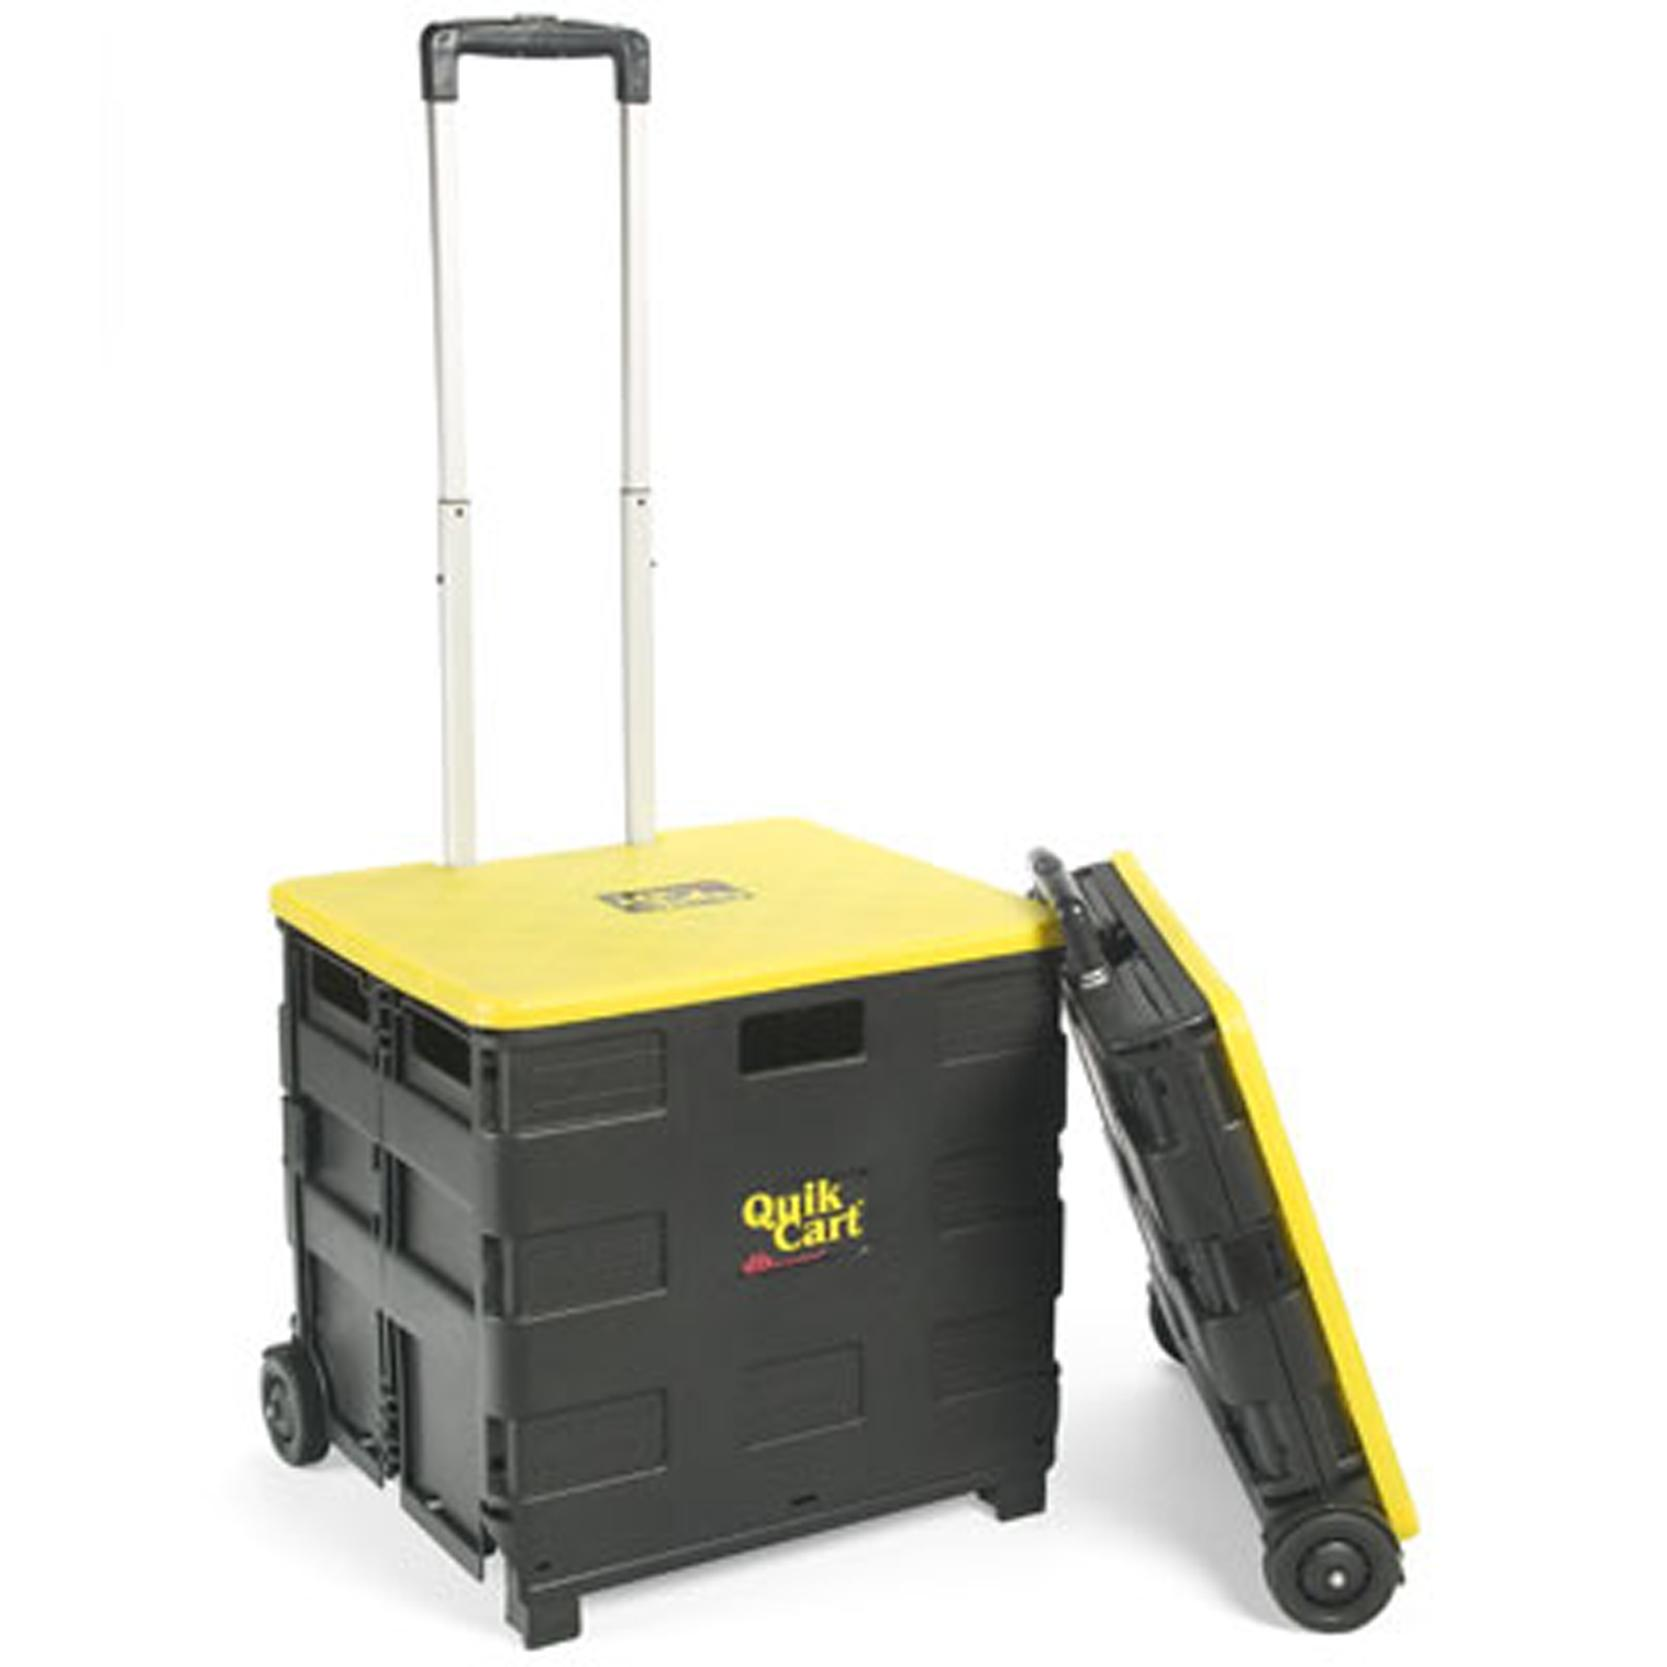 Dbest Products 00 011 Quik Cart Carro Plegable Con Tapa